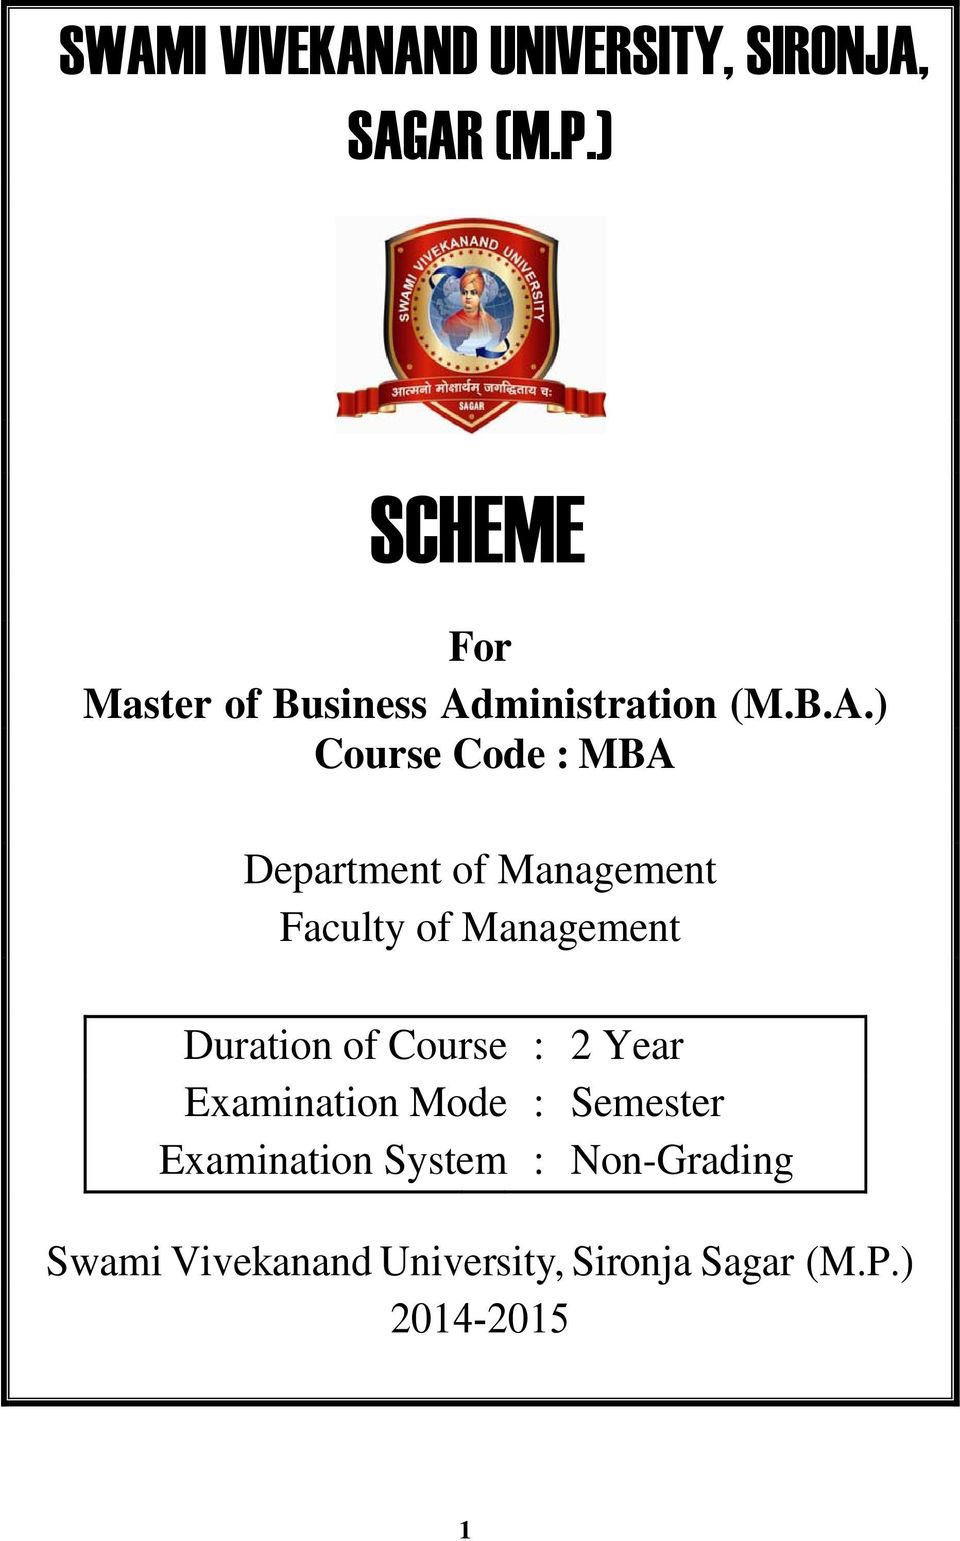 For Master of Business Administration (M B A ) Course Code : MBA - PDF